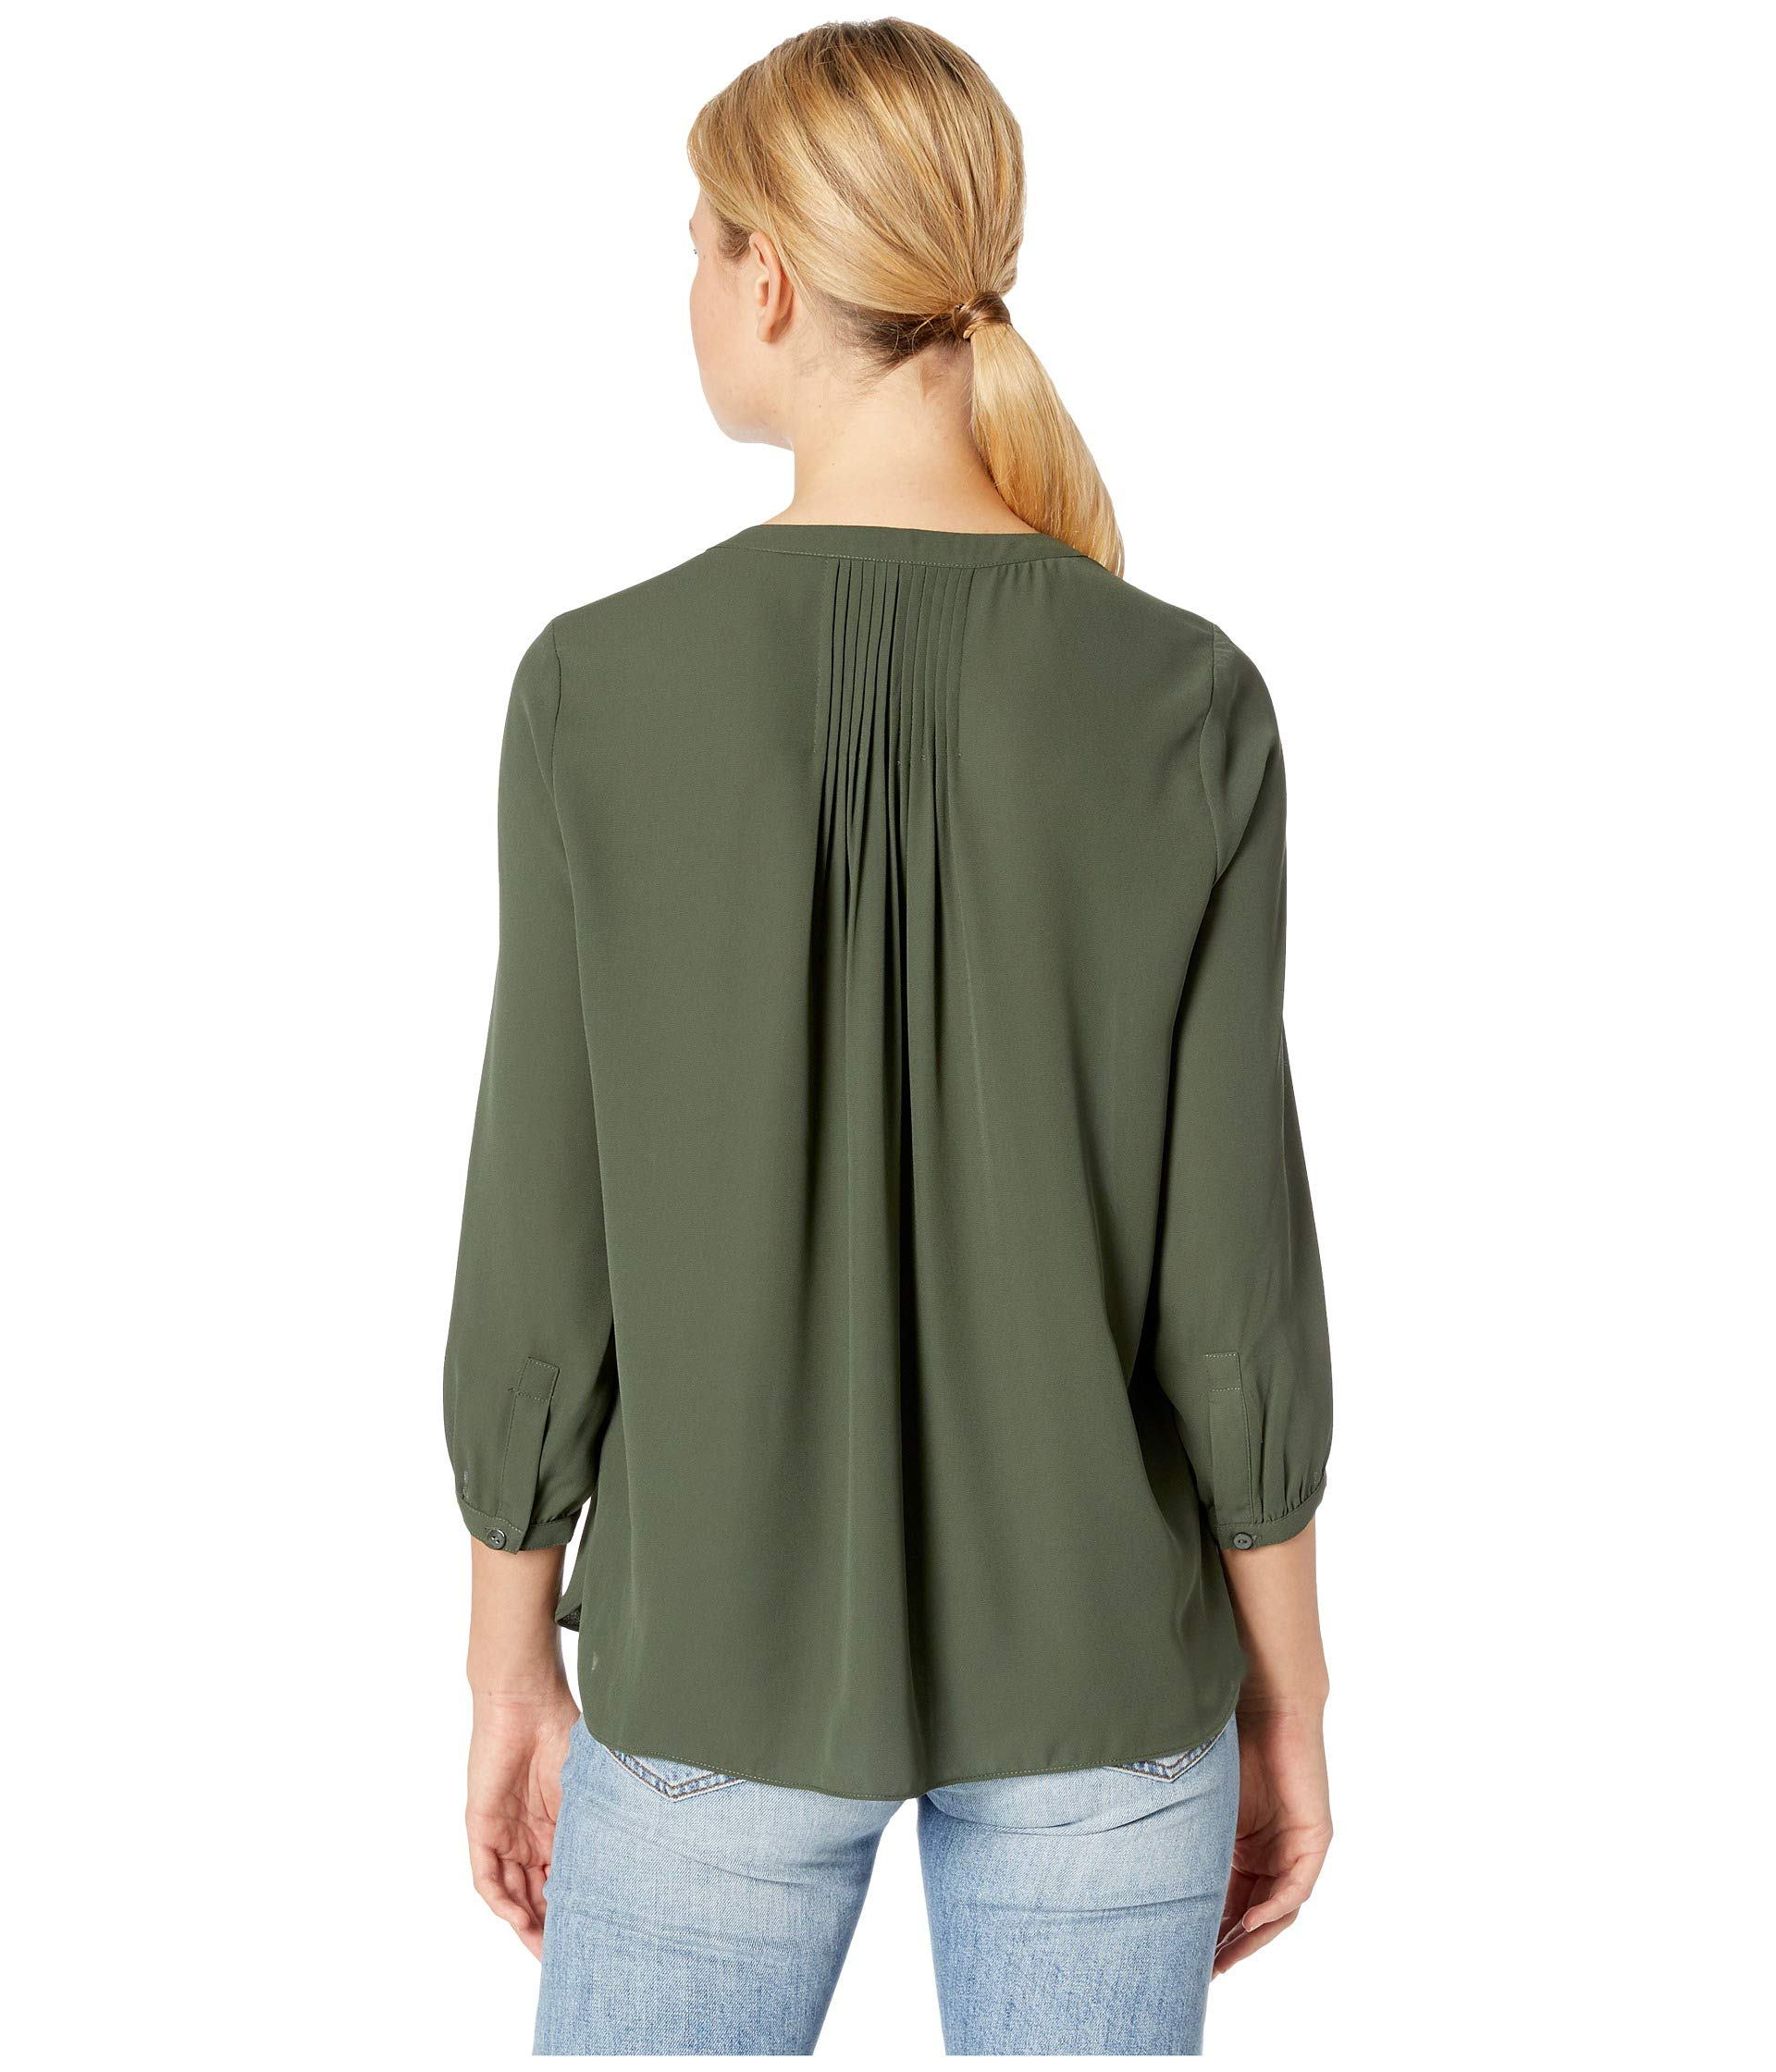 W Pleated Sugar Blouse Back Pine Nydj Bw5qx